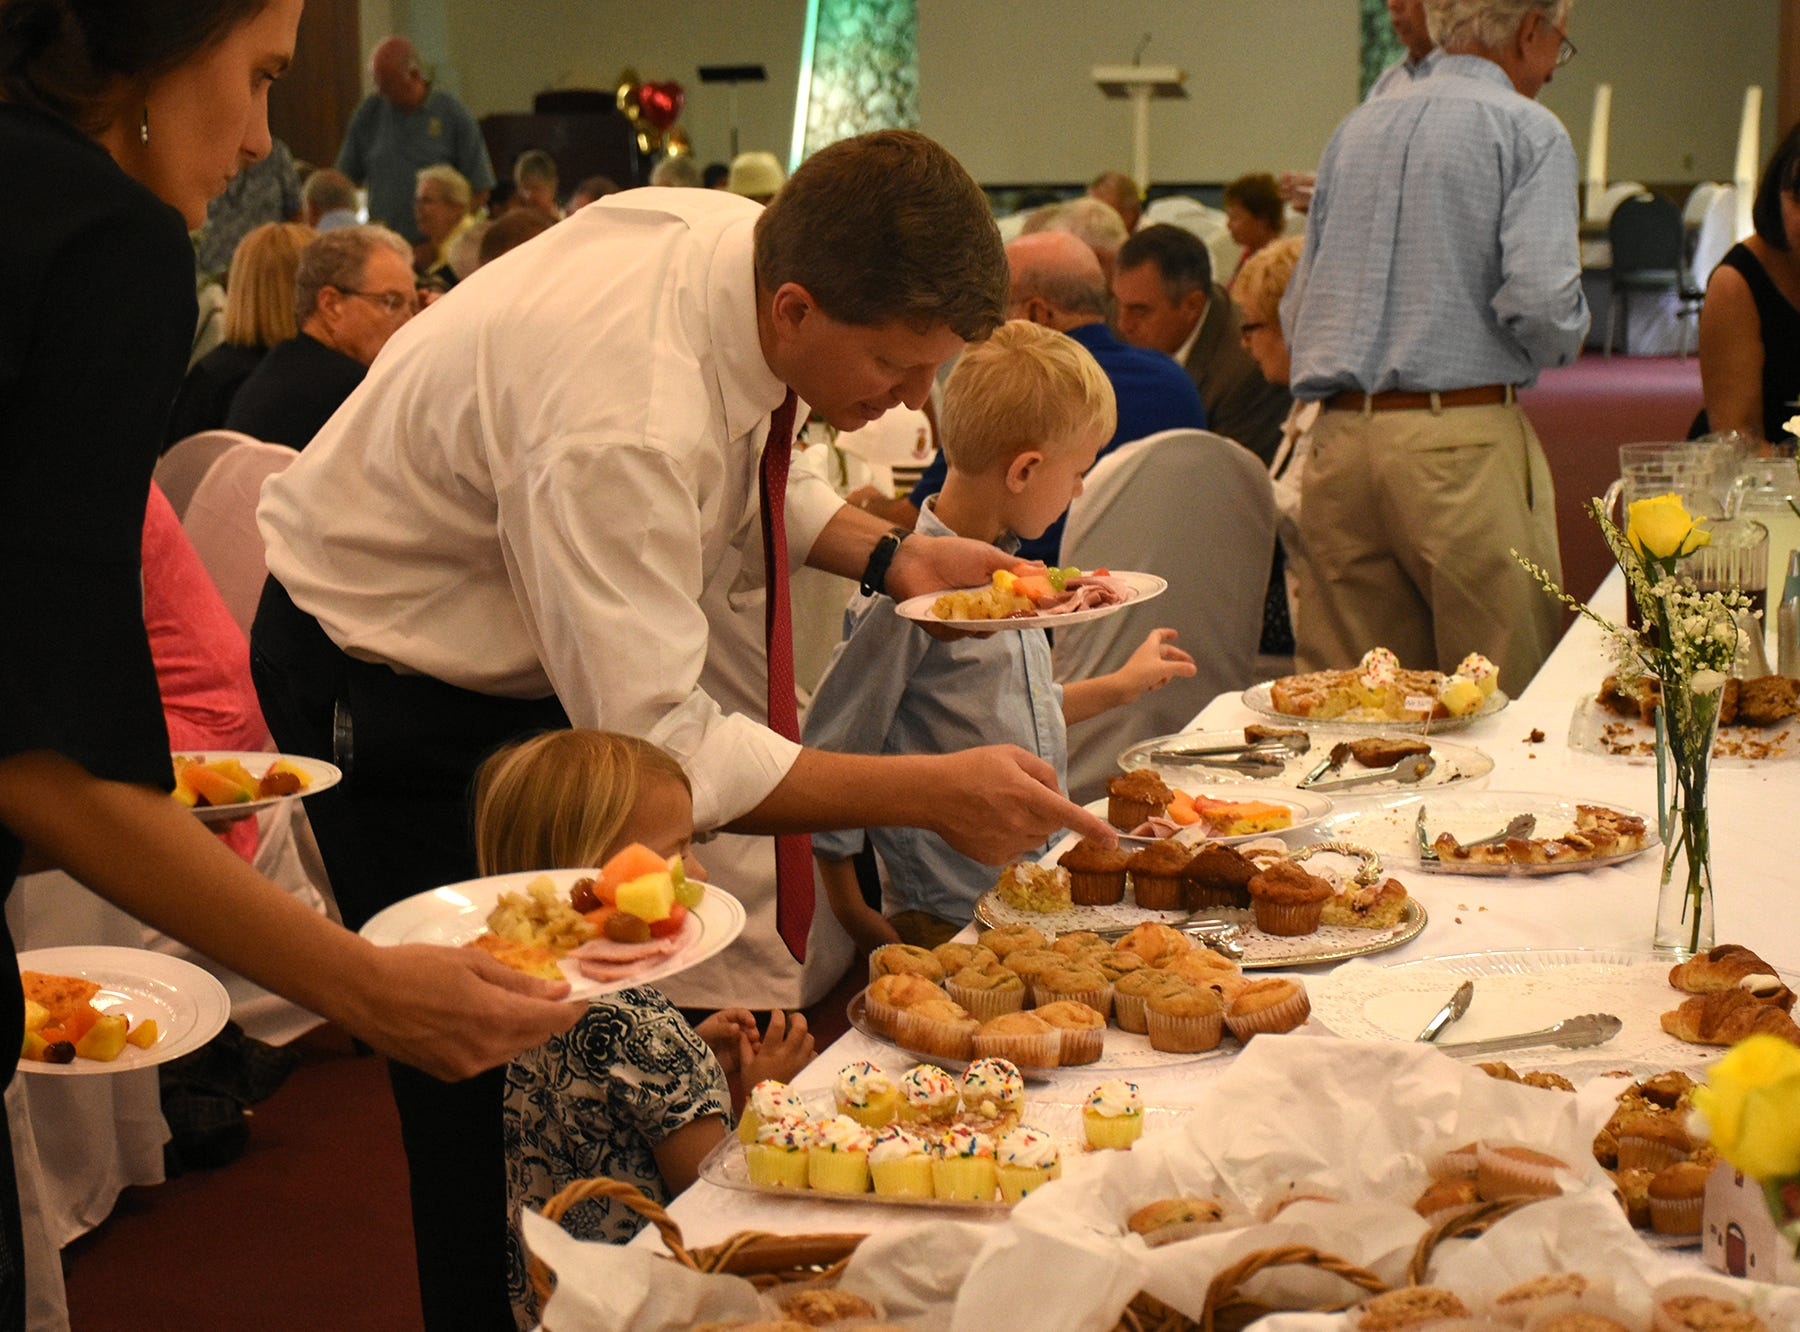 Pastor Mark Williams and his wife Emily, left, help their children Marie and Nolan pick out baked goods at the brunch following the dedication. United Church of Marco Island held a ceremony Sunday dedicating their newly erected steeple, which was damaged during Hurricane Irma.